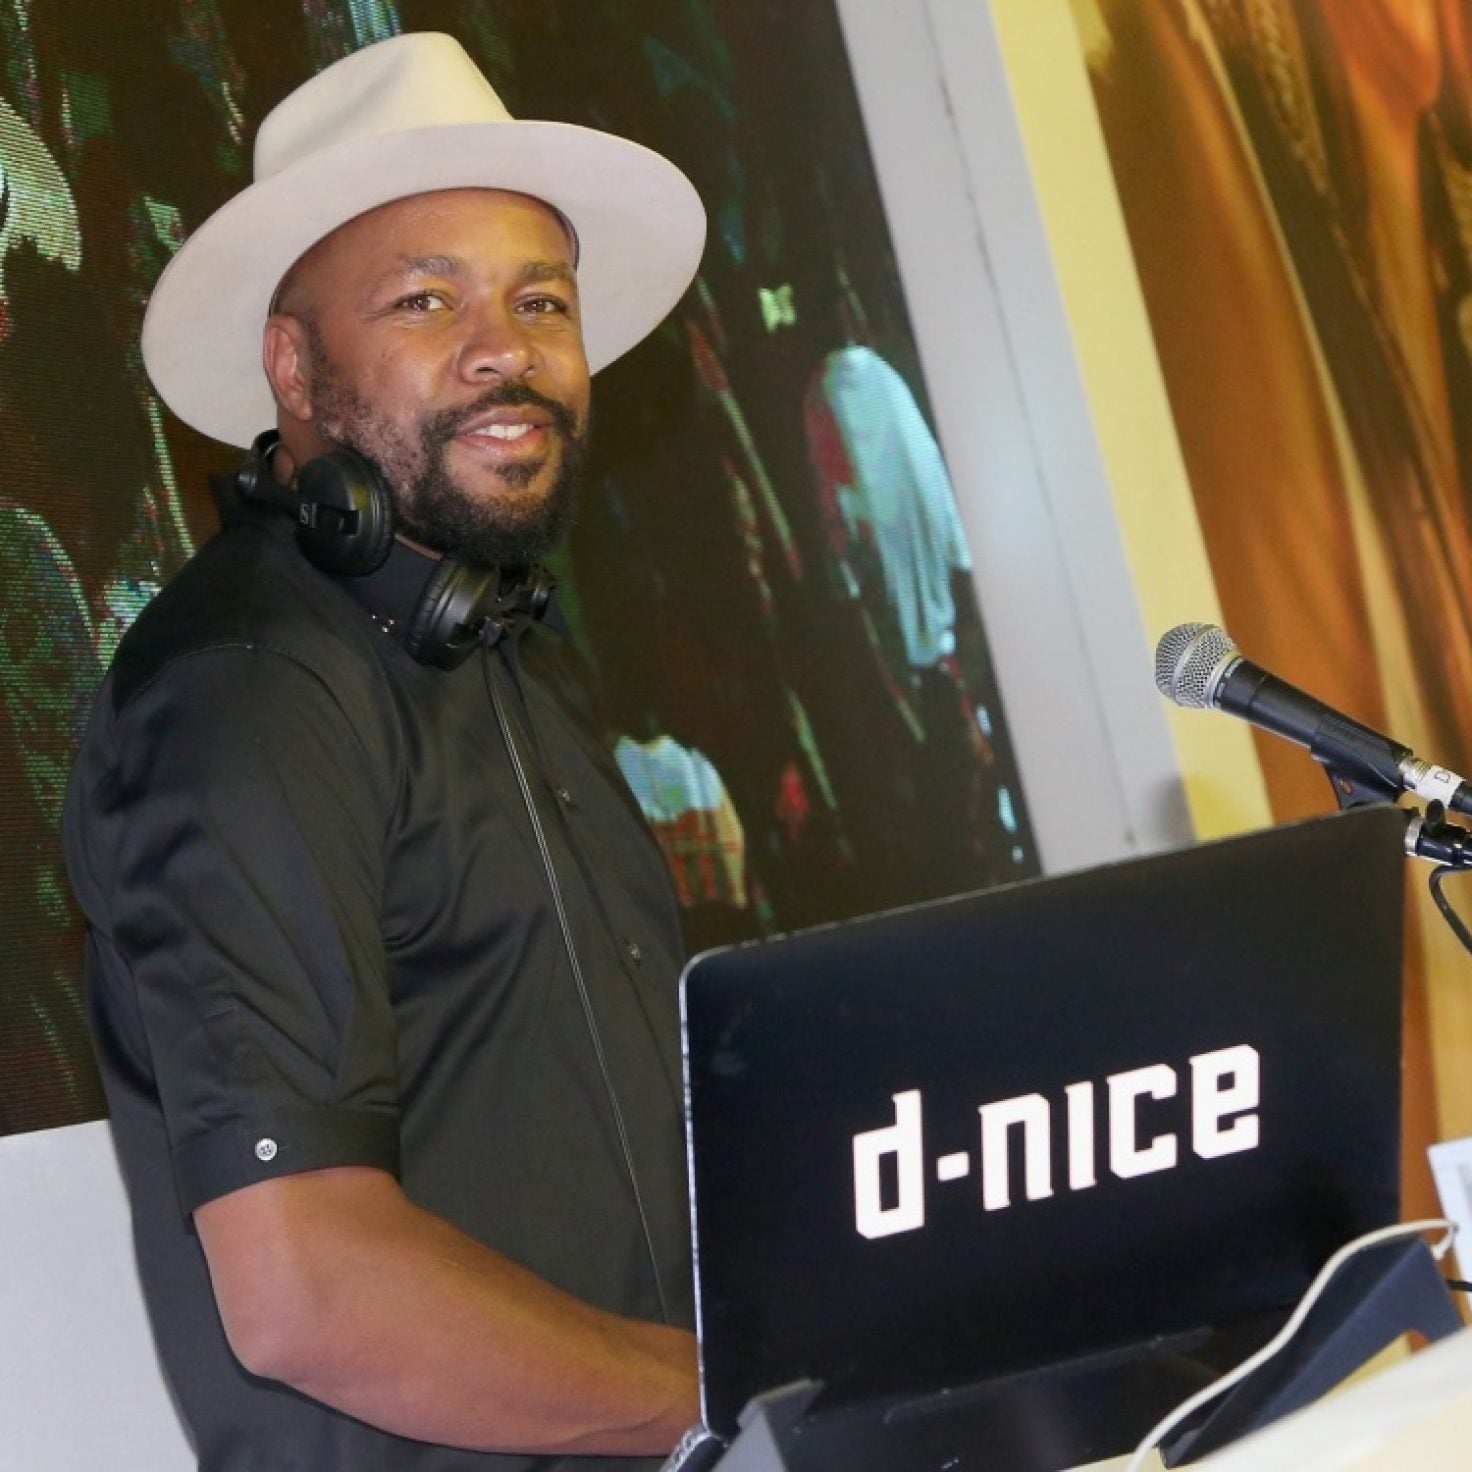 Black Thought, Kelly Rowland & More Celebrate D-Nice's 100k+ #ClubQuarantine Party